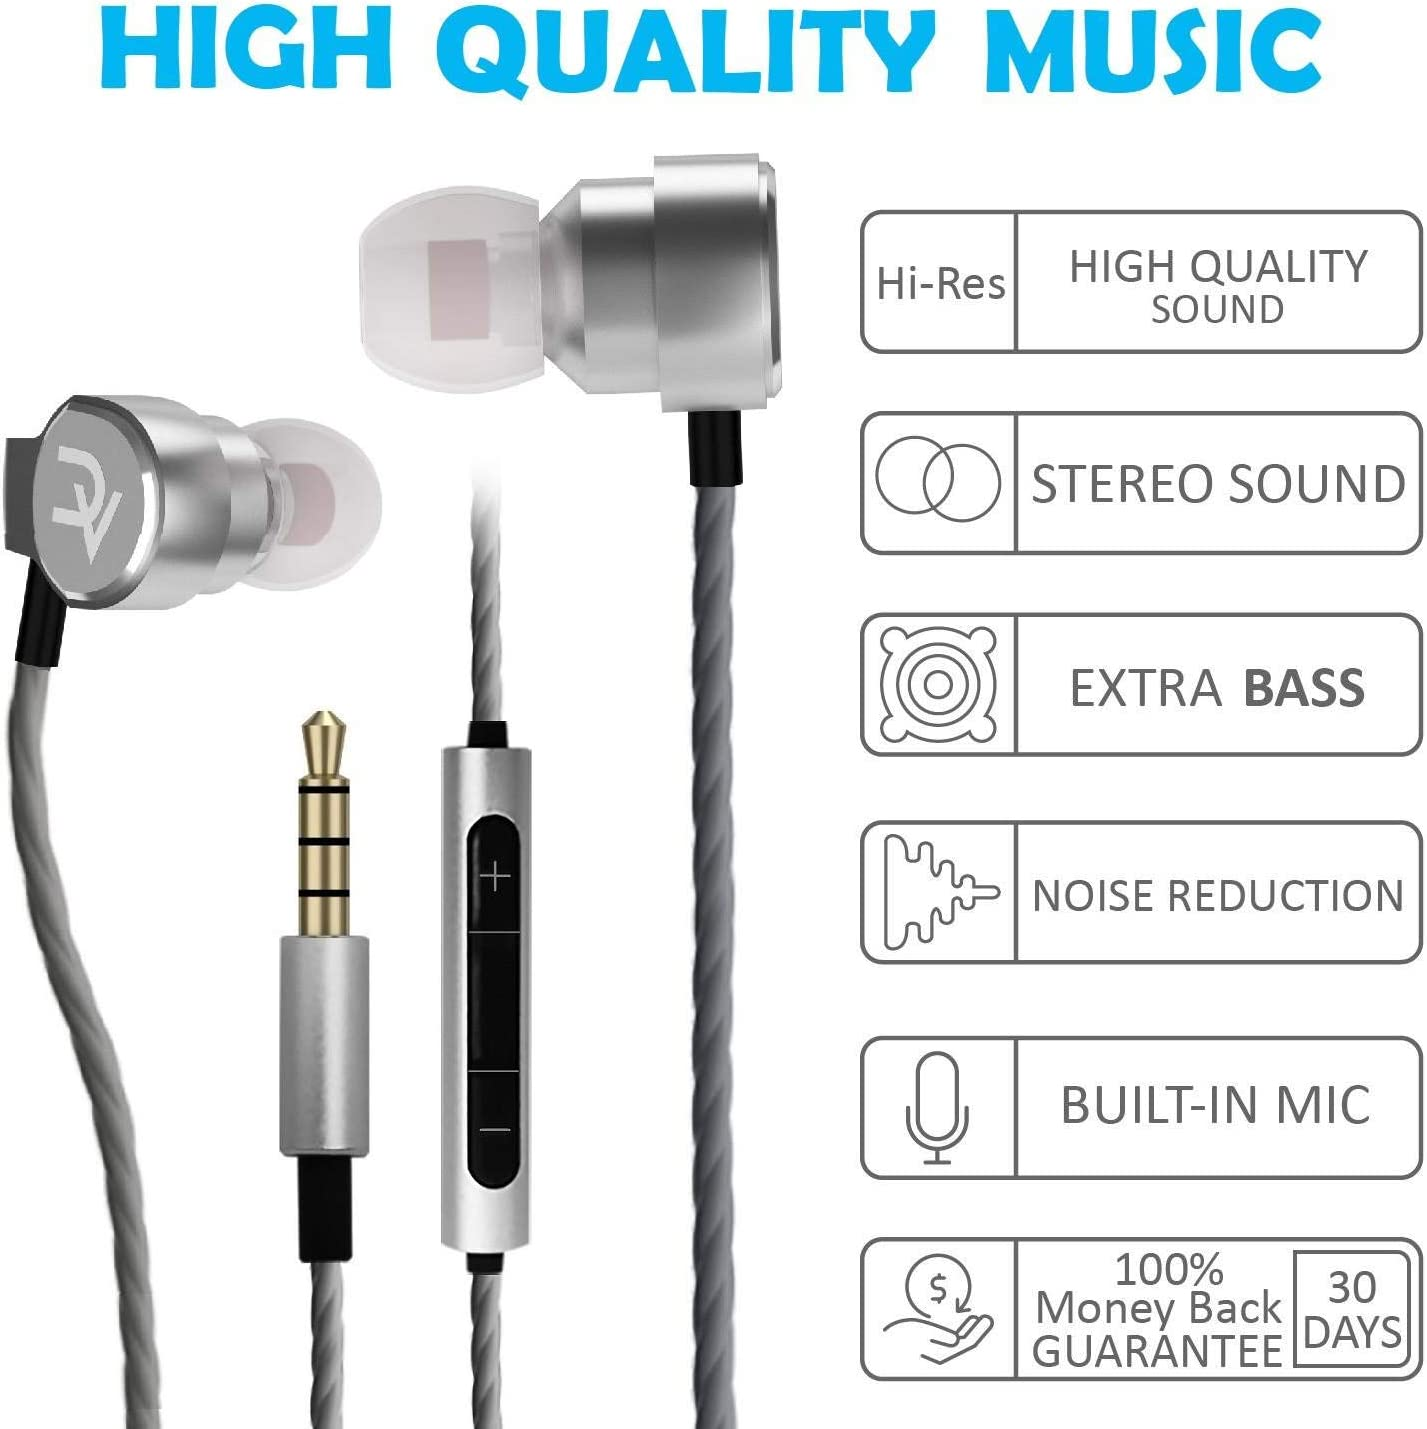 DEIVVOX Wired Earbuds with Microphone and Volume Control – in Ear Headphones Wired Ear Buds – Earphones with Microphone Mic Extra Bass – Compatible with Apple iPhone Ipad Samsung Galaxy Sony 3.5mm